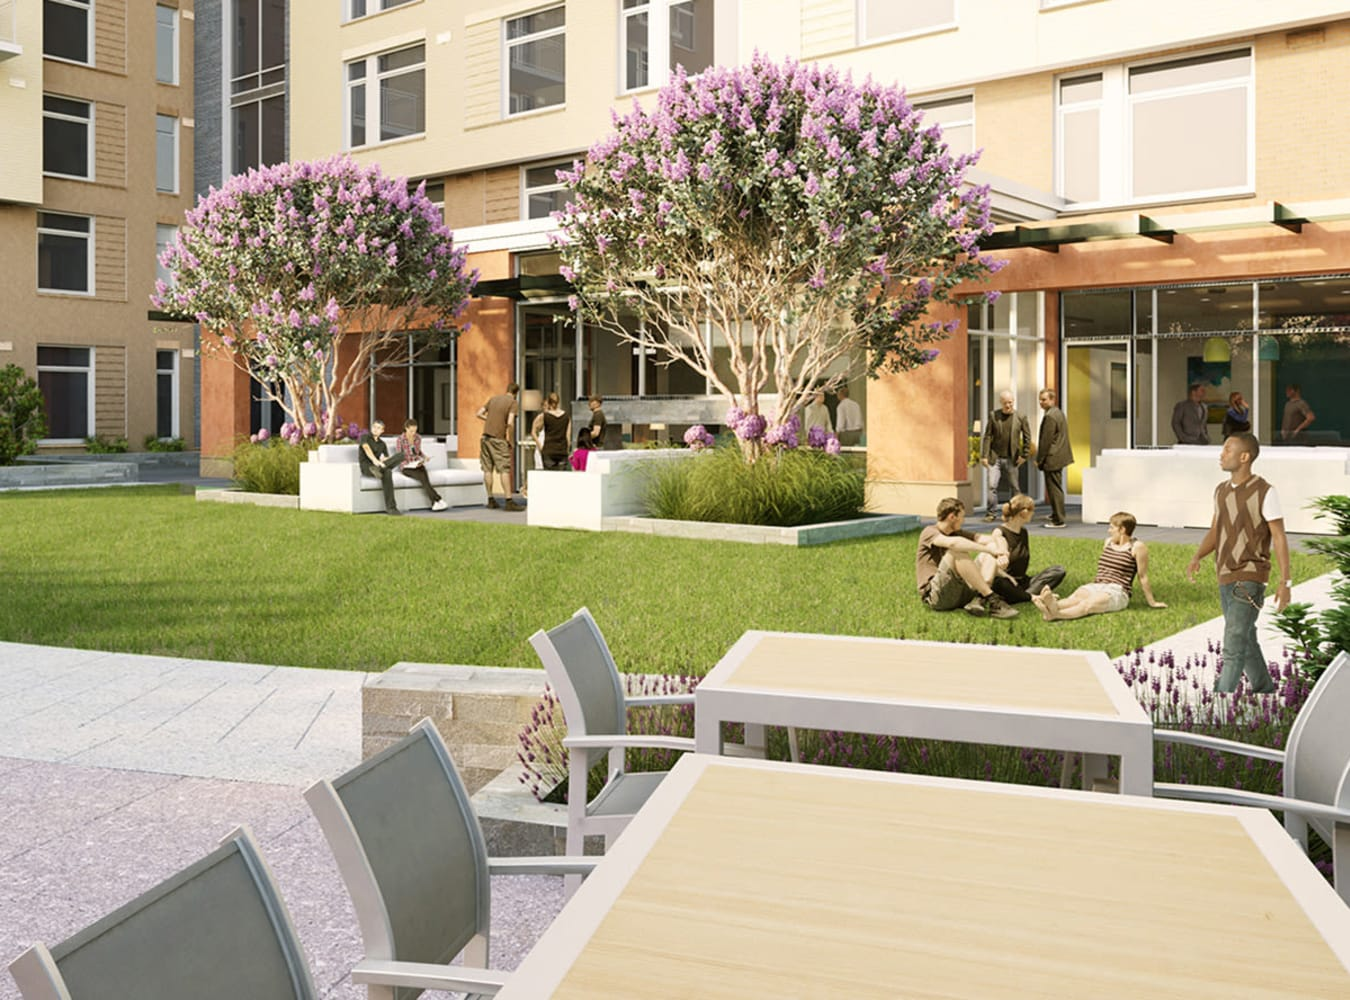 Outdoor patio area with plenty of seating at Solaire 8250 Georgia in Silver Spring, Maryland